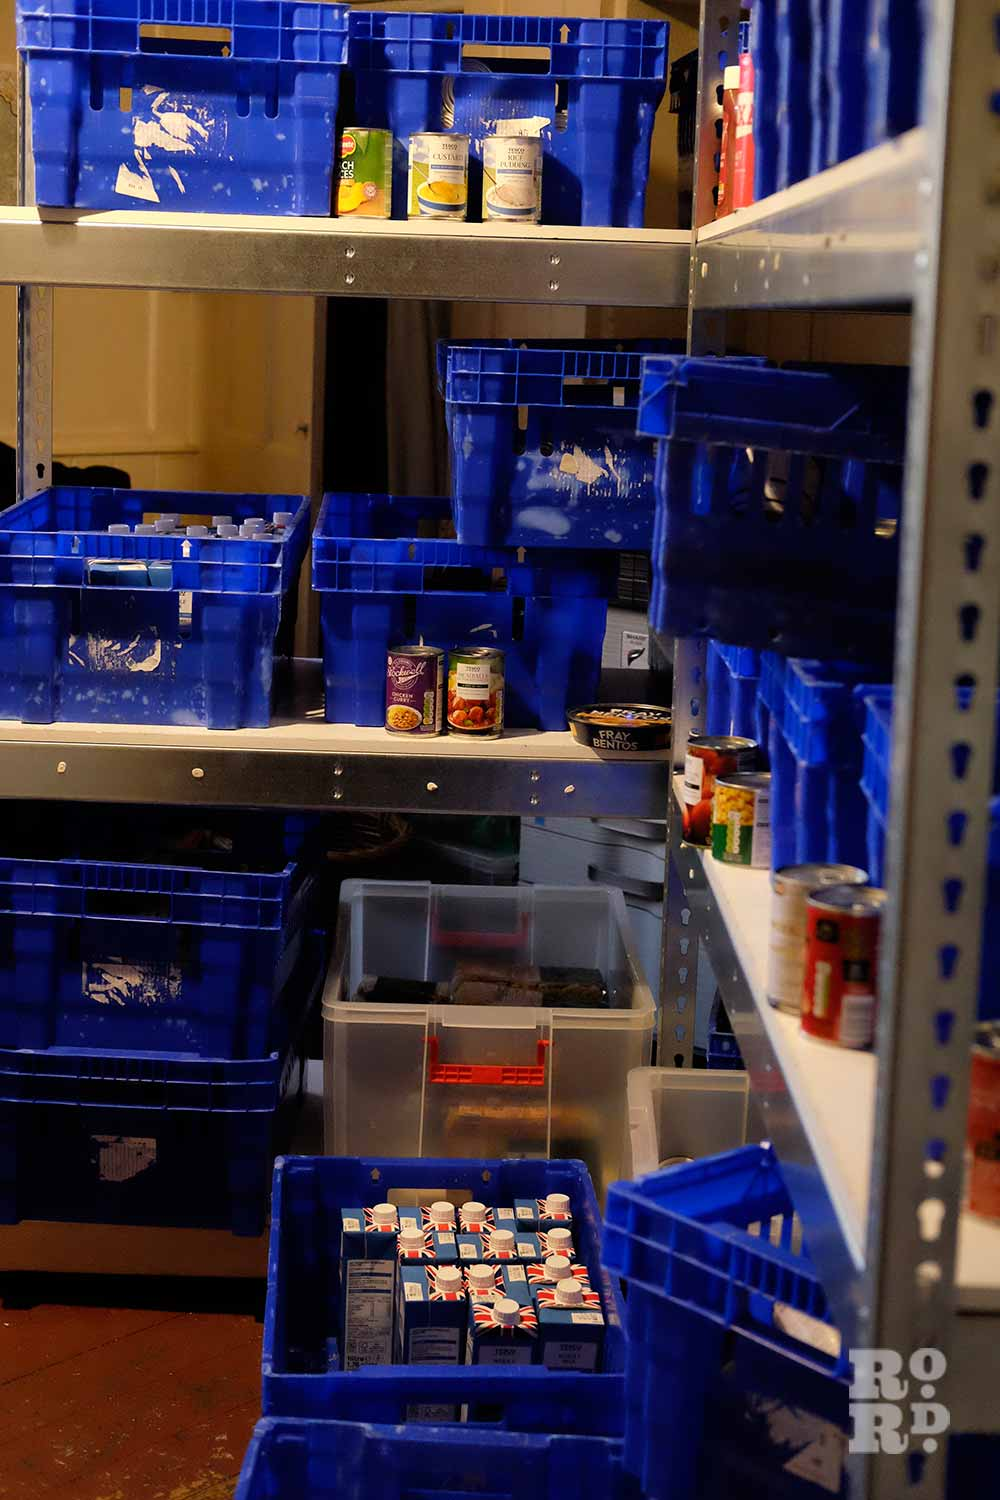 Blue crates storing food at Bow Food Bank, East London